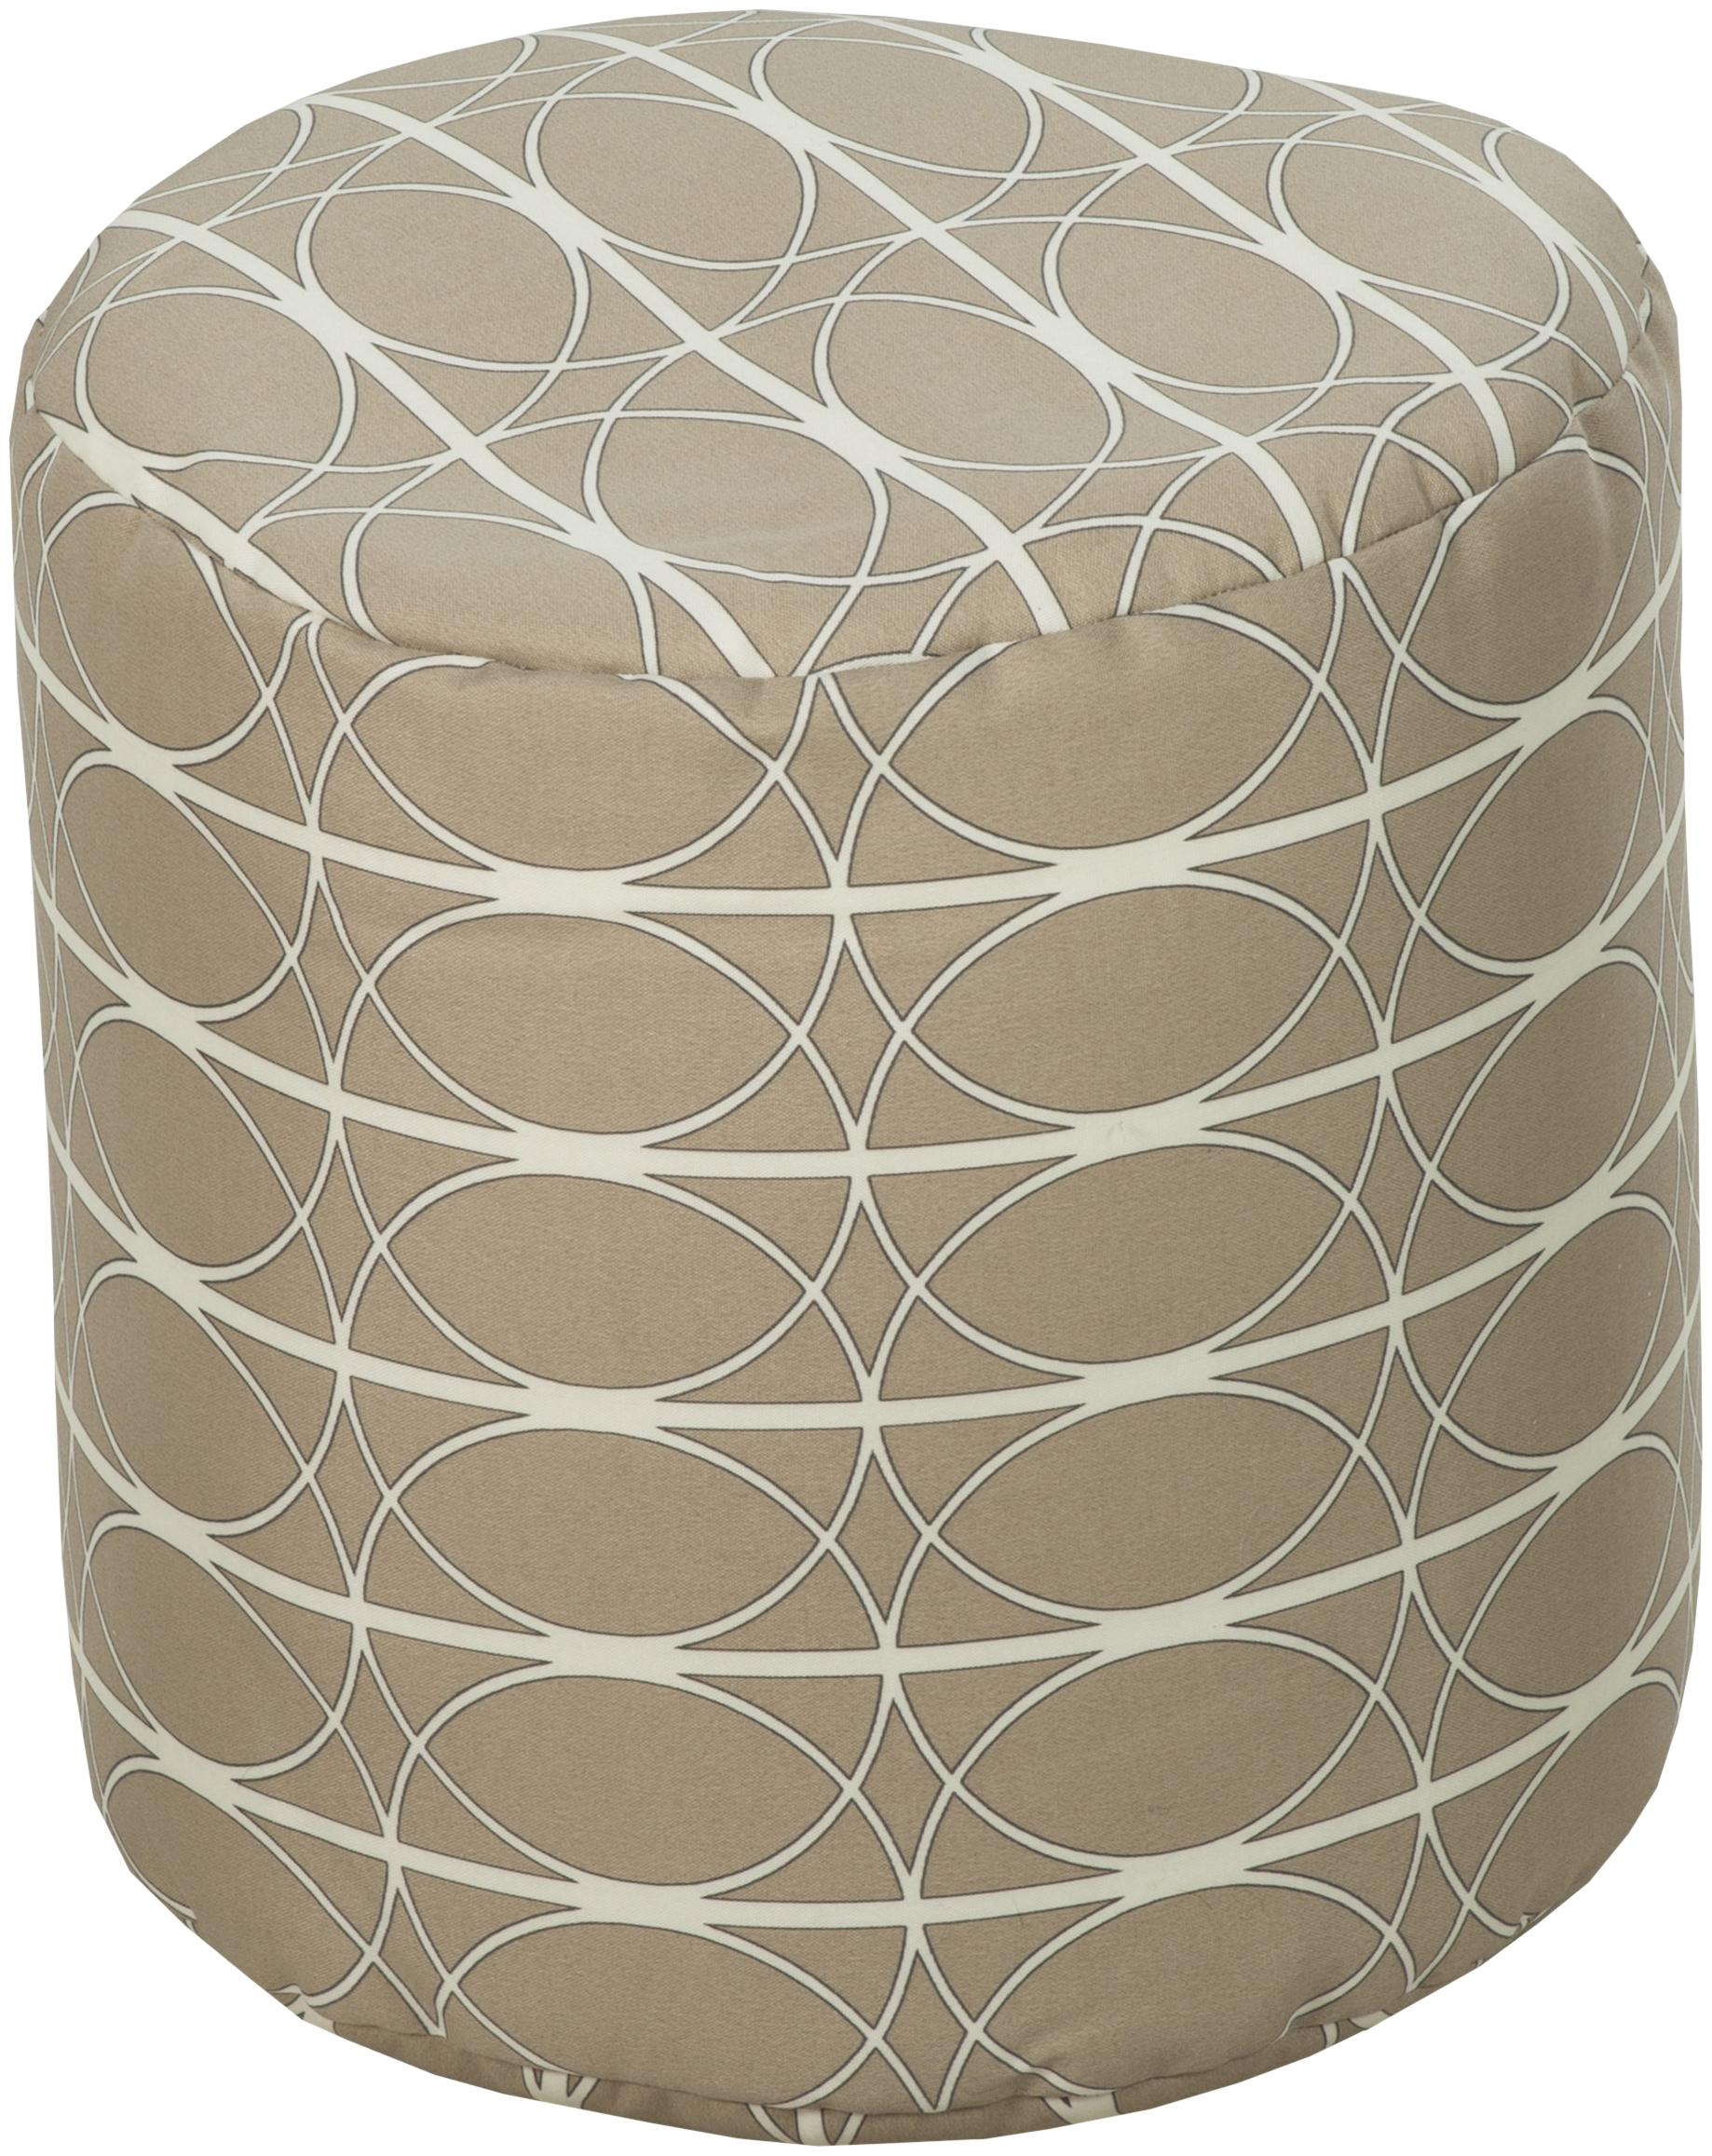 """Surya Rugs Poufs Round 18"""" Pouf - Item Number: POUF-109"""